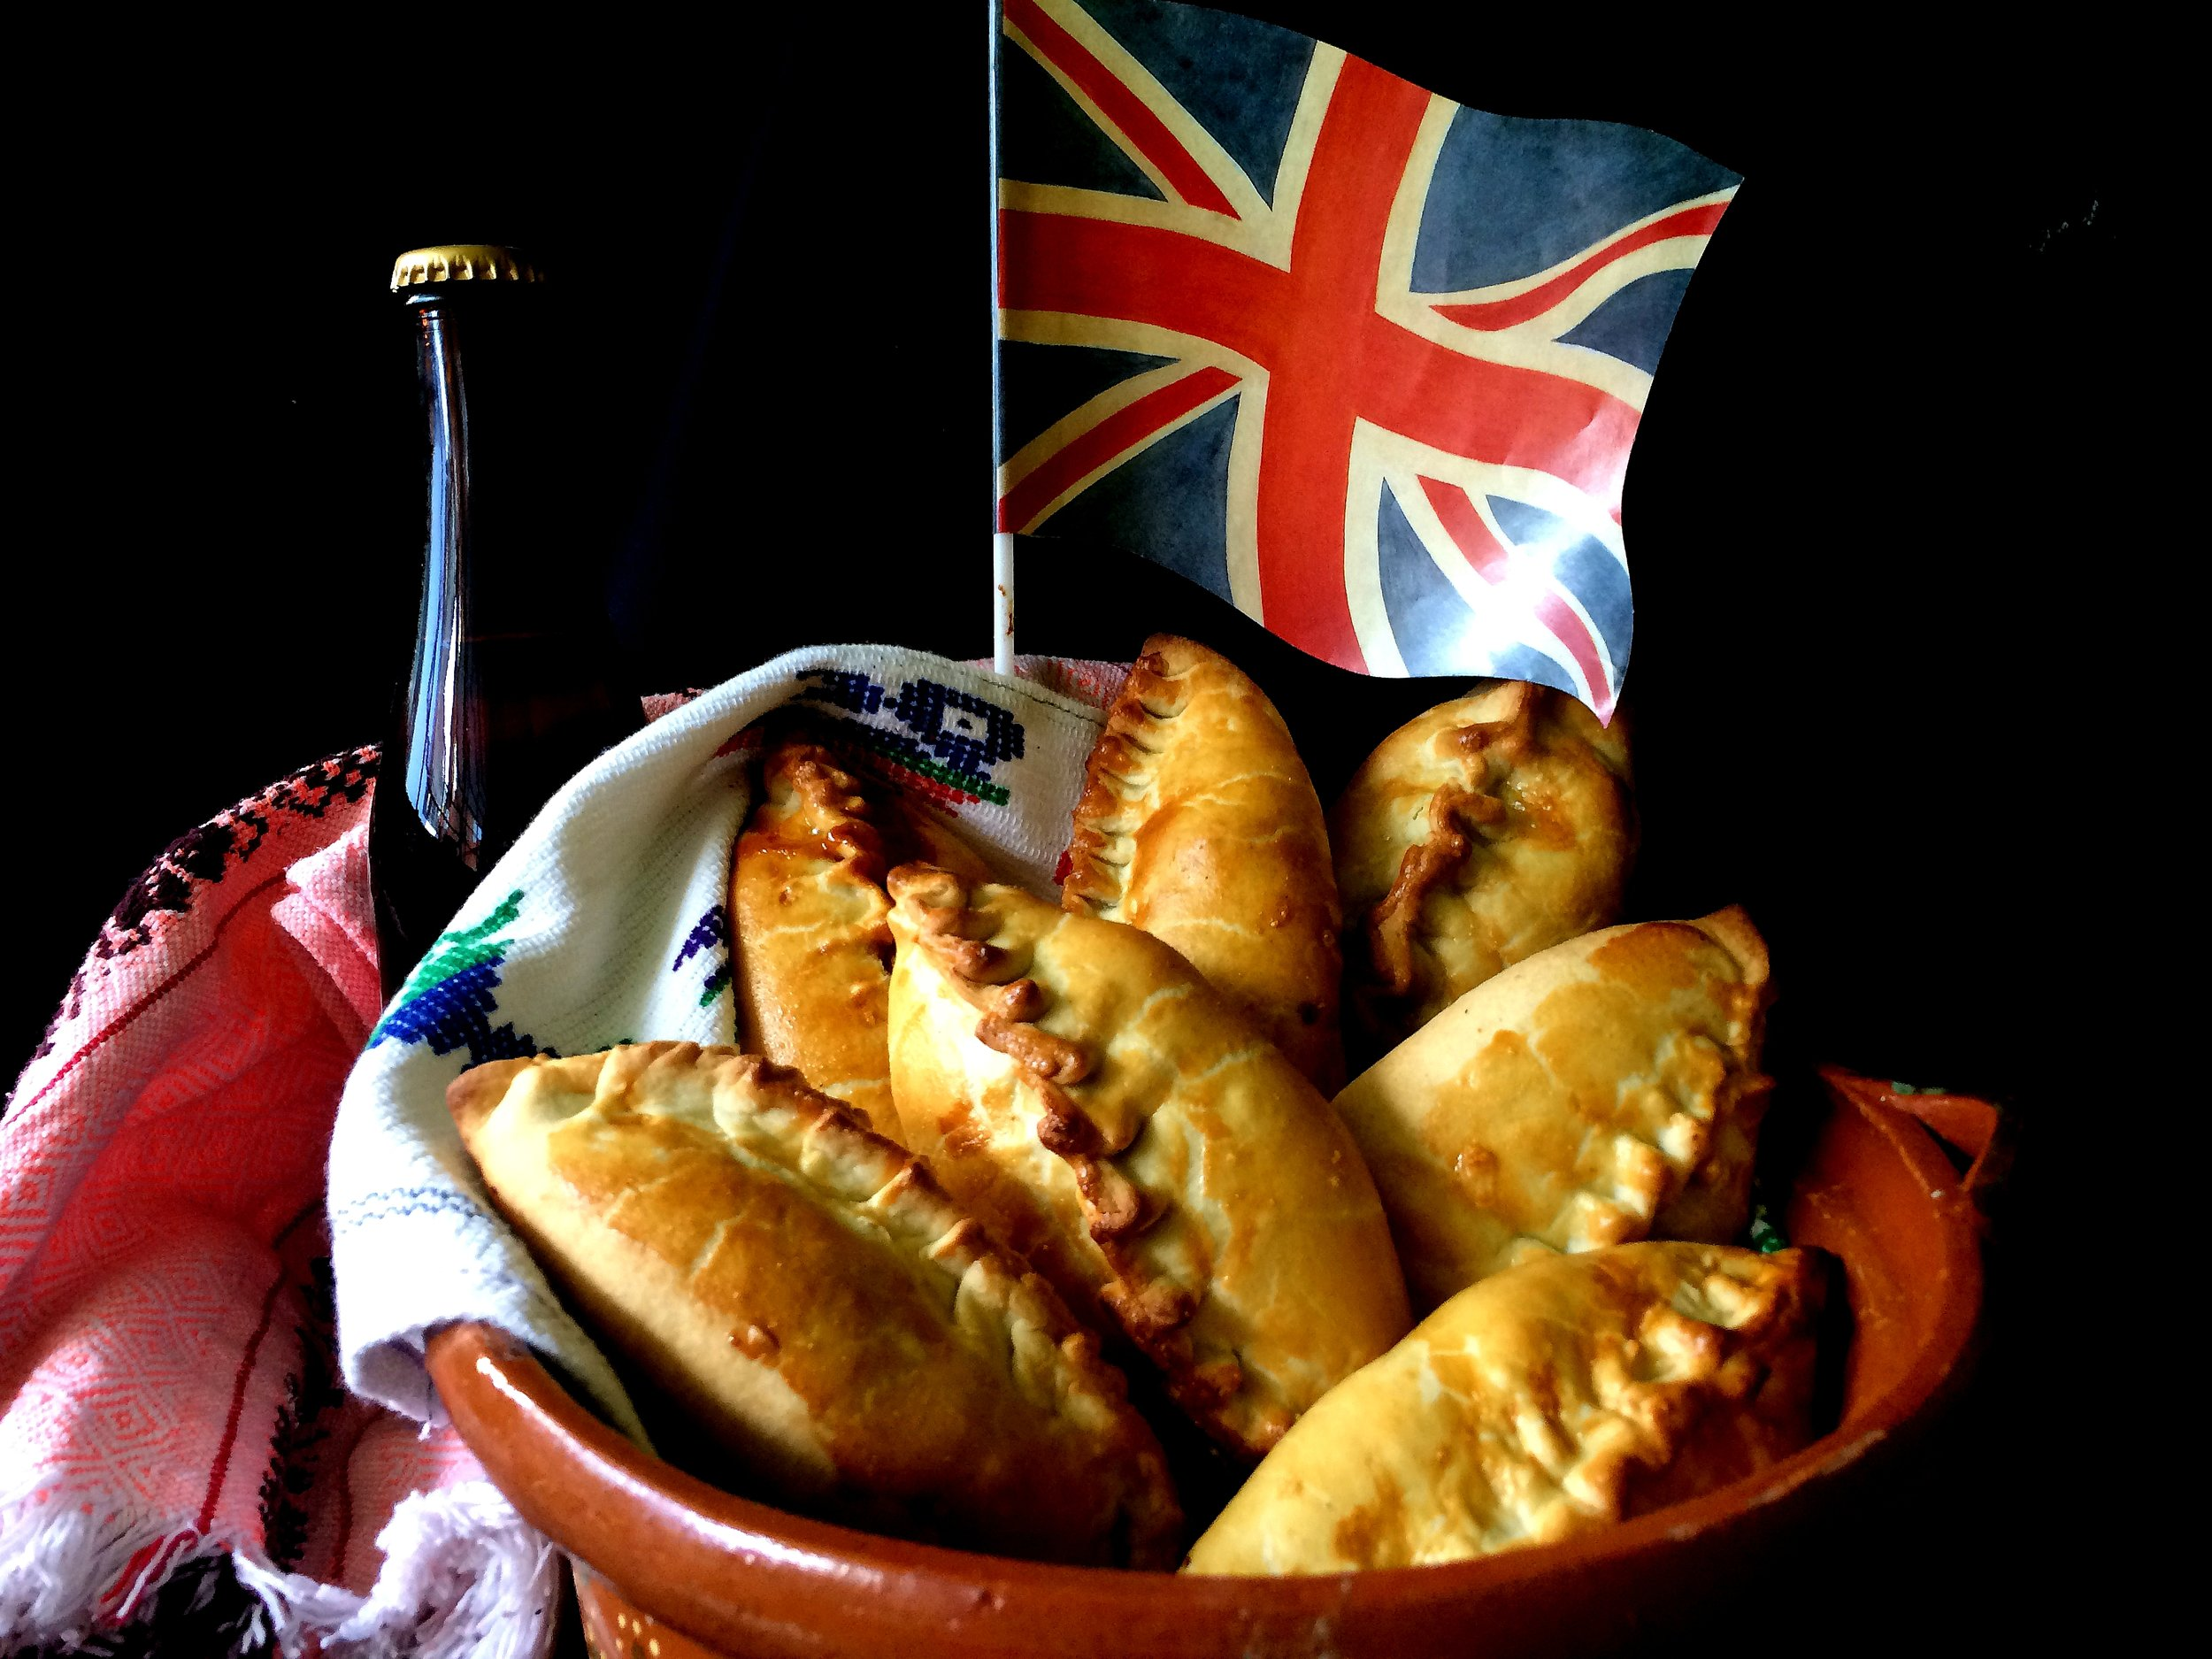 """Subterranean Snacks: Cornish Pasties in 19th Century Mexico              96               Normal   0           false   false   false     EN-US   X-NONE   X-NONE                                                                                                                                                                                                                                                                                                                                                                                                                                                                                                                                                                                                                                                                                                                                                                                                                                                                                      /* Style Definitions */ table.MsoNormalTable {mso-style-name:""""Table Normal""""; mso-tstyle-rowband-size:0; mso-tstyle-colband-size:0; mso-style-noshow:yes; mso-style-priority:99; mso-style-parent:""""""""; mso-padding-alt:0in 5.4pt 0in 5.4pt; mso-para-margin:0in; mso-para-margin-bottom:.0001pt; mso-pagination:widow-orphan; font-size:12.0pt; font-family:Calibri; mso-ascii-font-family:Calibri; mso-ascii-theme-font:minor-latin; mso-hansi-font-family:Calibri; mso-hansi-theme-font:minor-latin;}      Struggling to decide what to have for lunch today? Take a tip from history & pack a pie! This week, The Feast explores how the pastry pie was the original grab & go lunch option, from the Ottoman börek to the Cornish pasty to the Hot Pocket. Although the Cornish pasty may be an icon of English cuisine, learn how a small town in the mountains of Mexico made this traditional mining meal their own. Plus, all the EU pastry laws you can handle on this week's special collaboration episode featuri"""